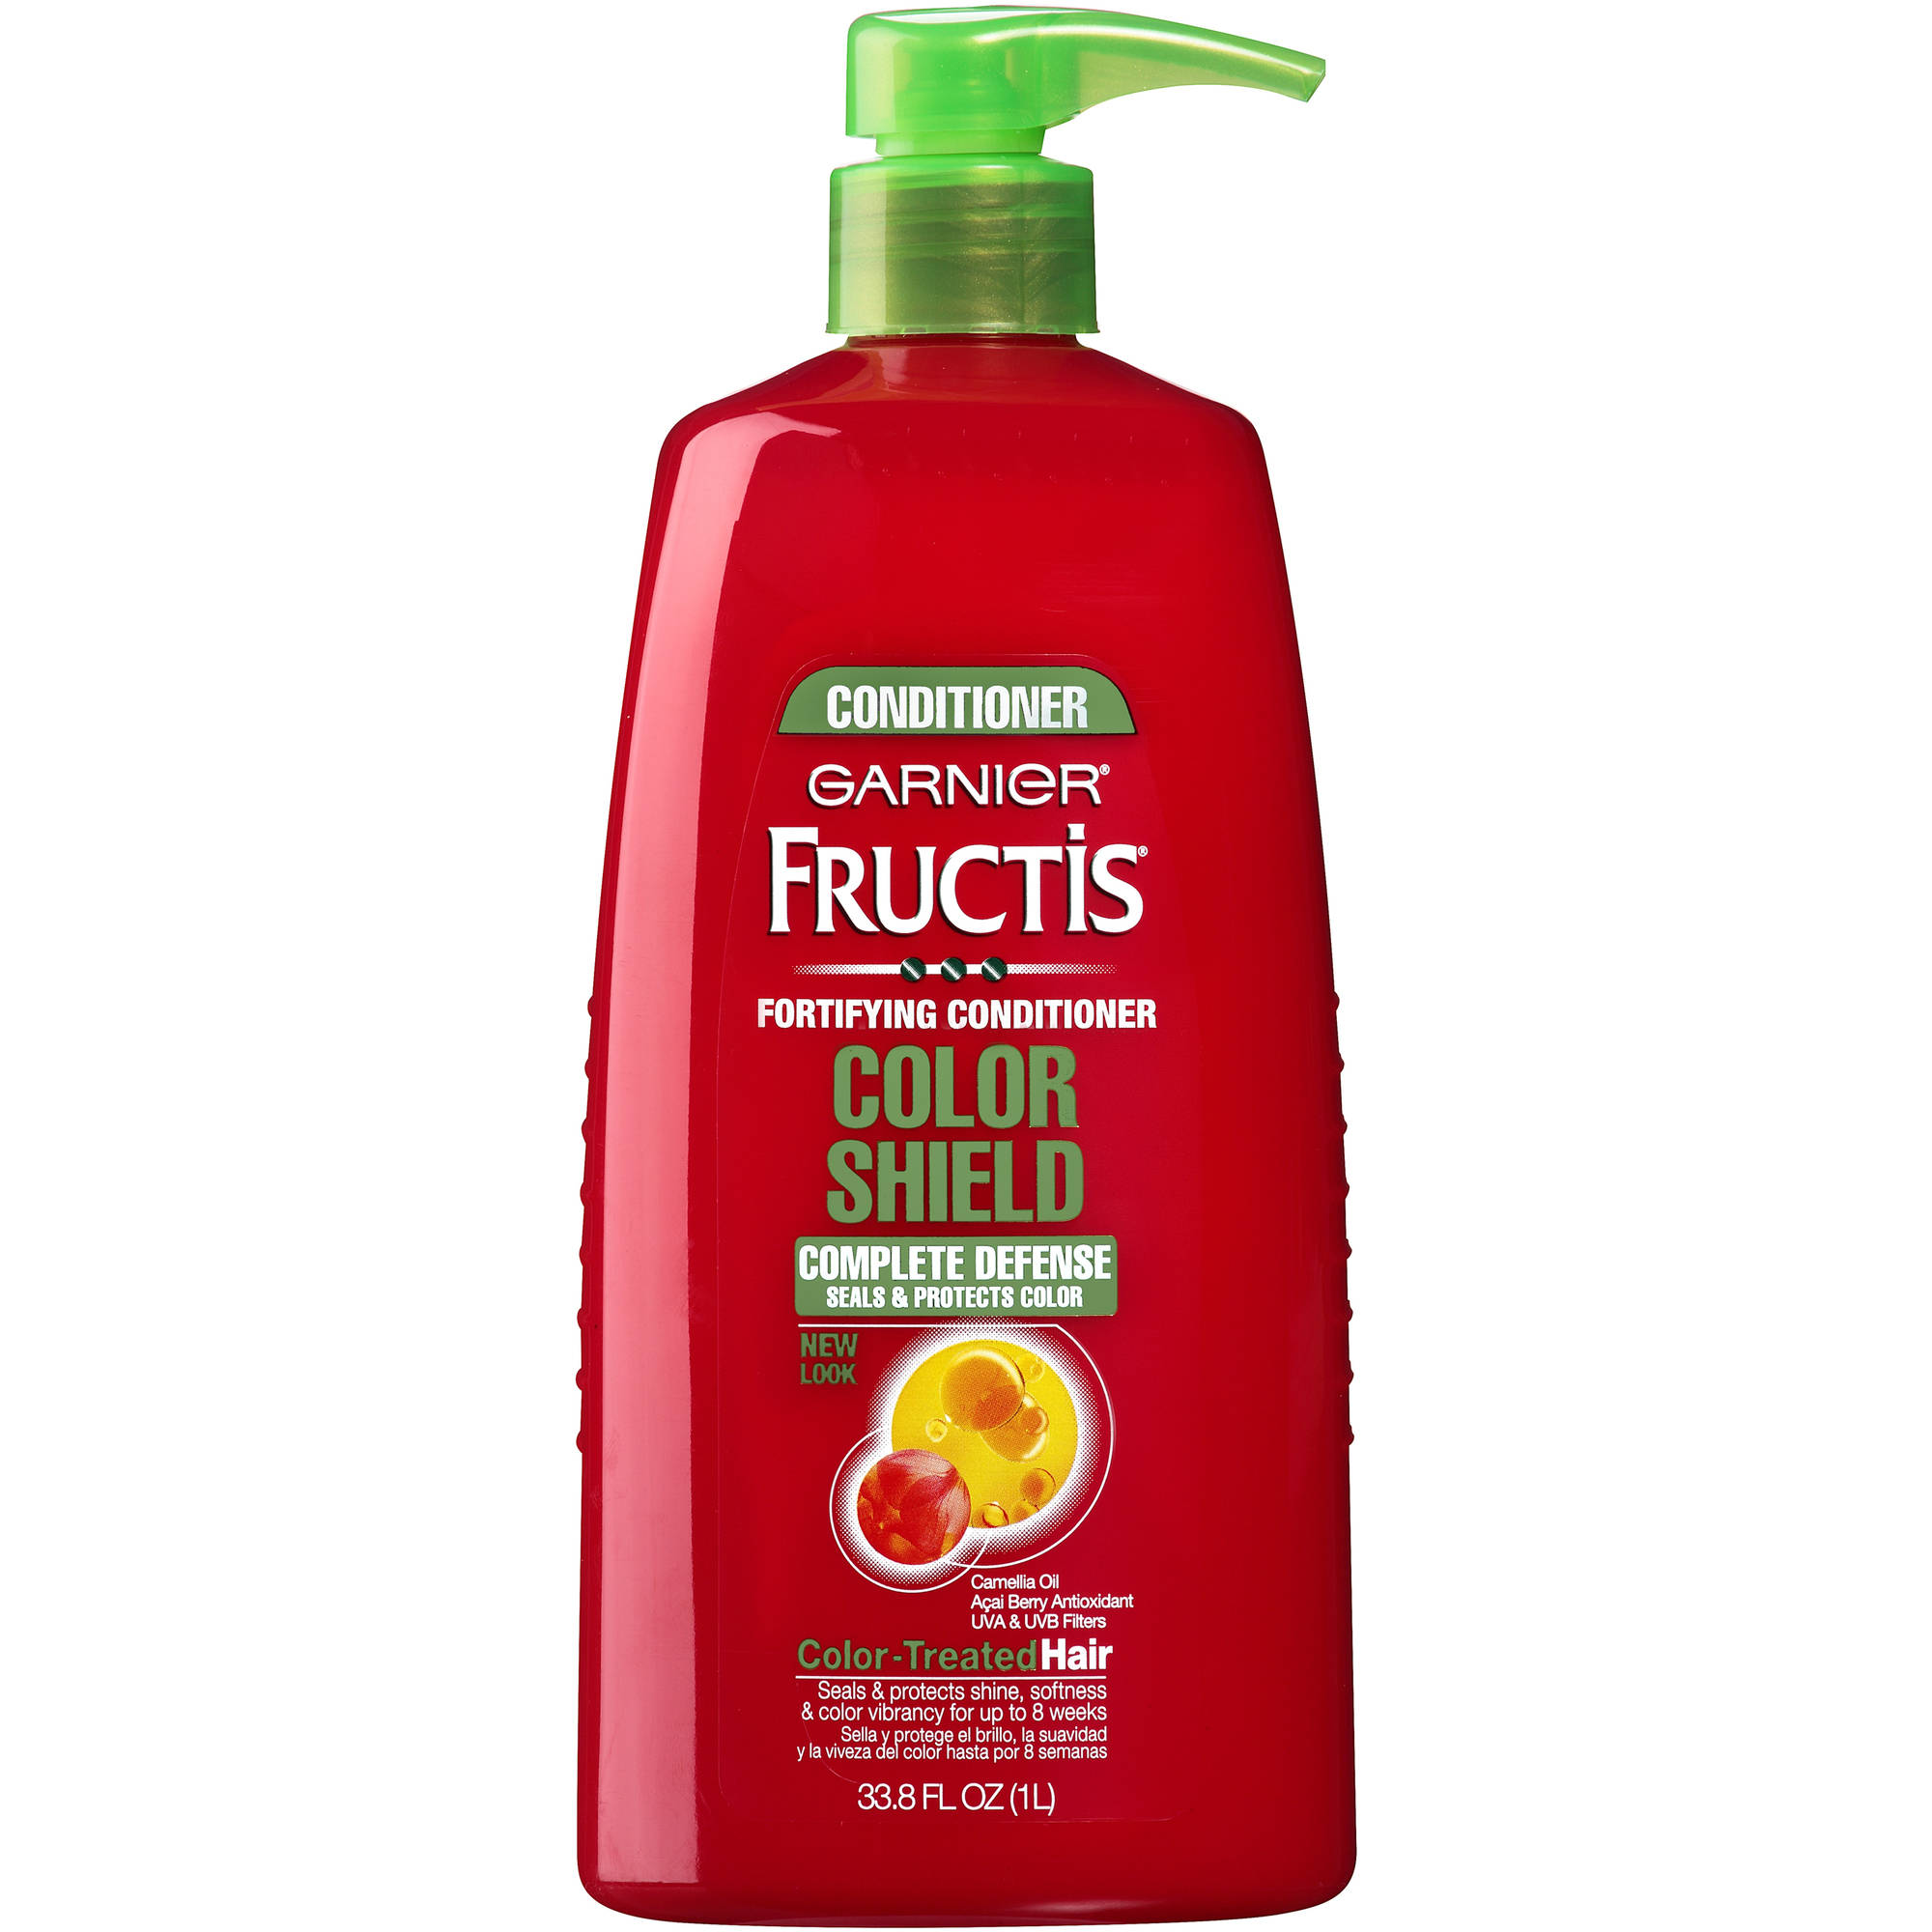 Garnier Fructis Color Shield Fortifying Conditioner, 33.8 fl oz